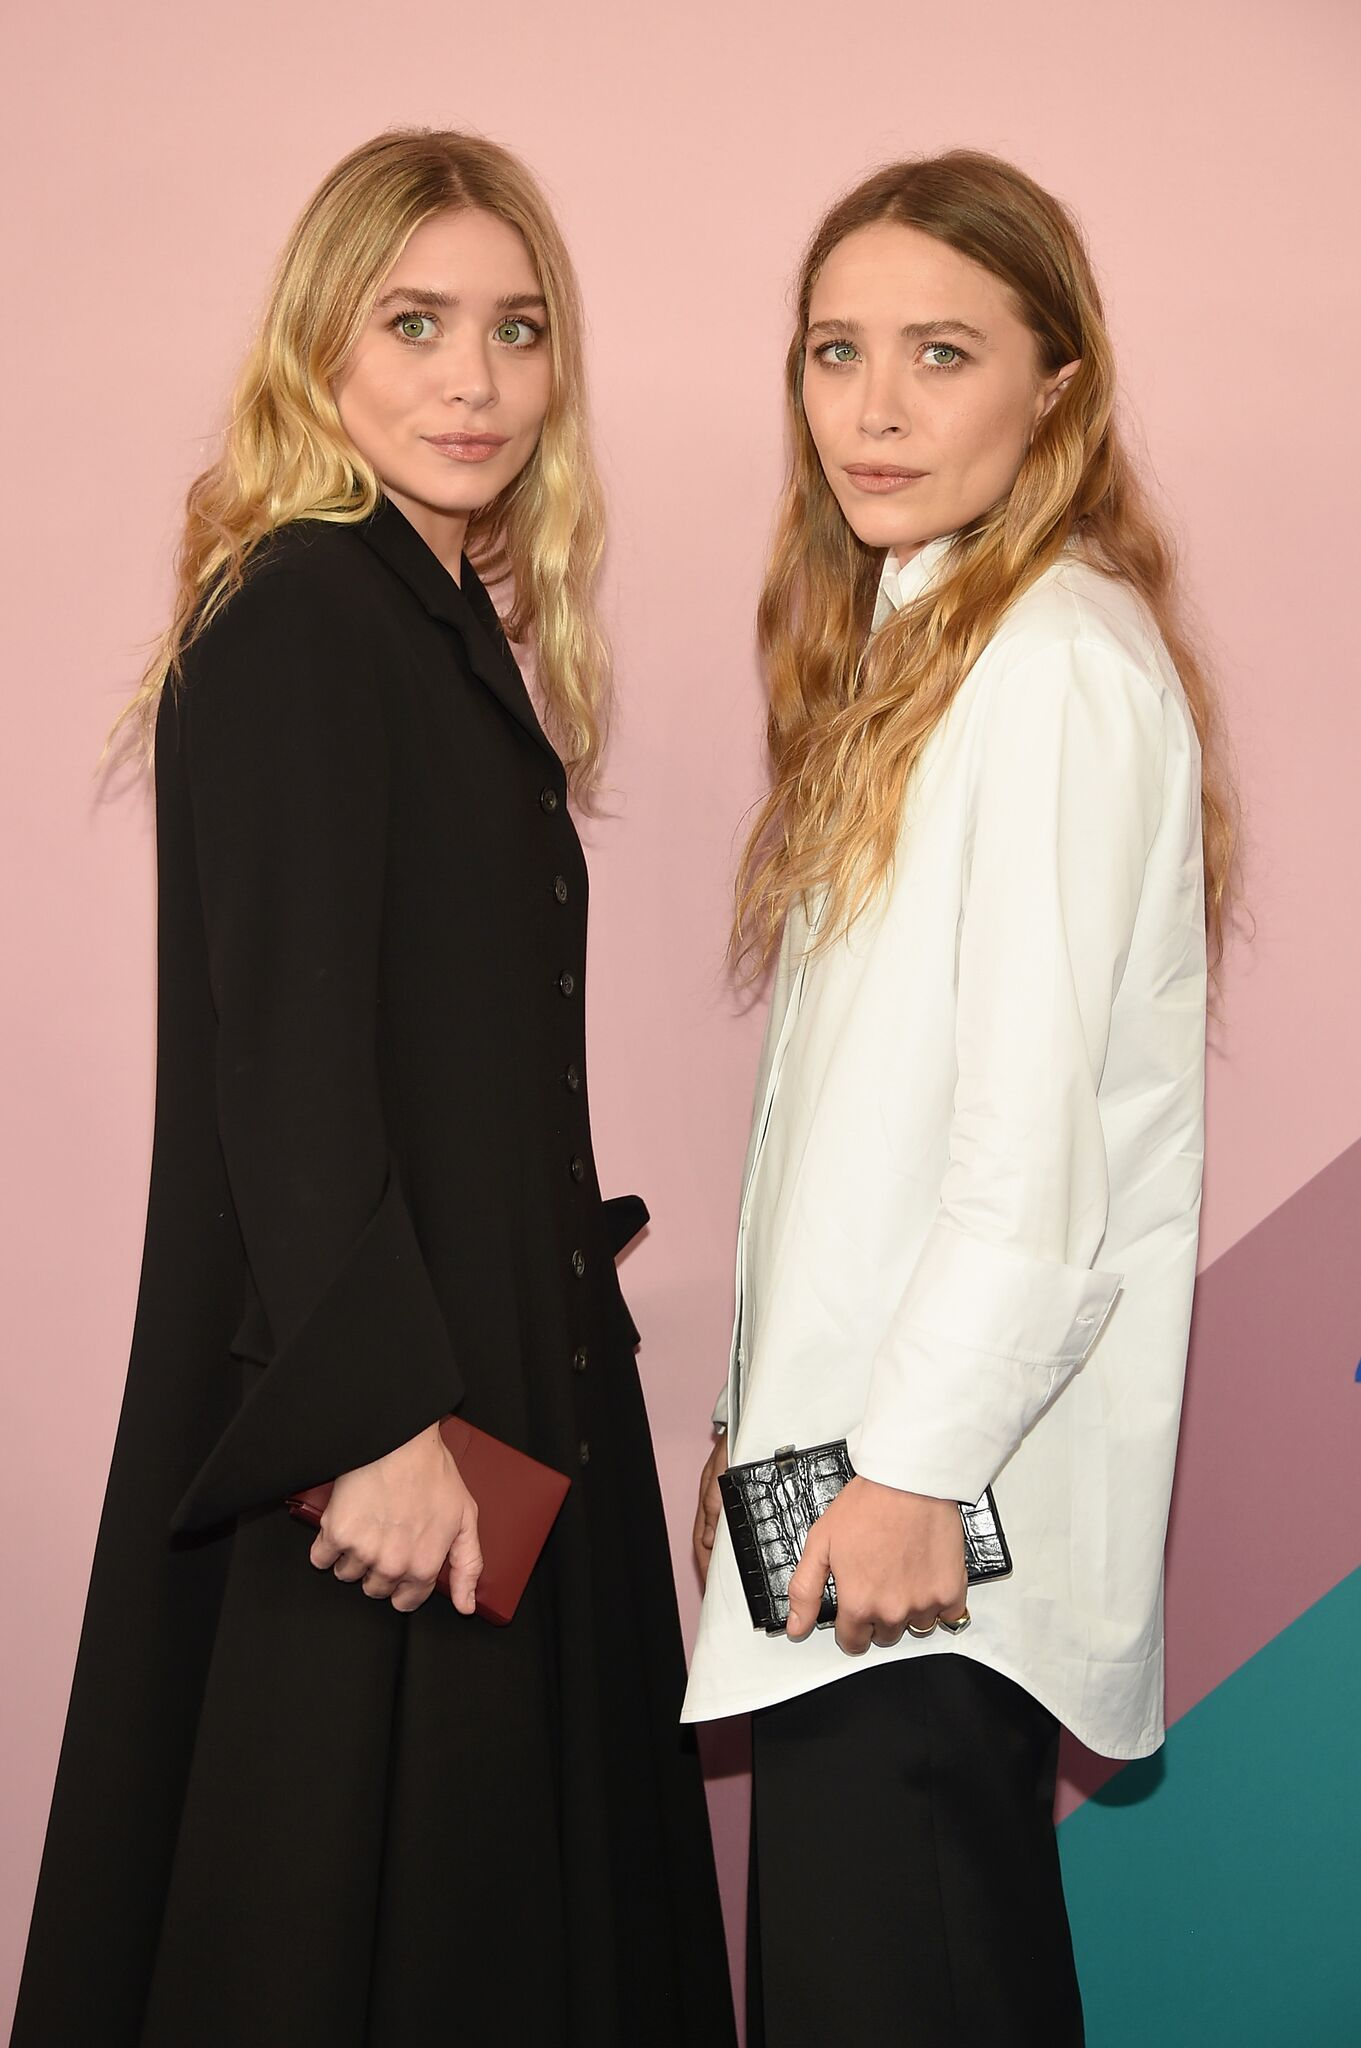 Ashley Olsen and Mary-Kate Olsen attend the 2017 CFDA Fashion Awards at Hammerstein Ballroom  | Getty Images / Global Images Ukraine